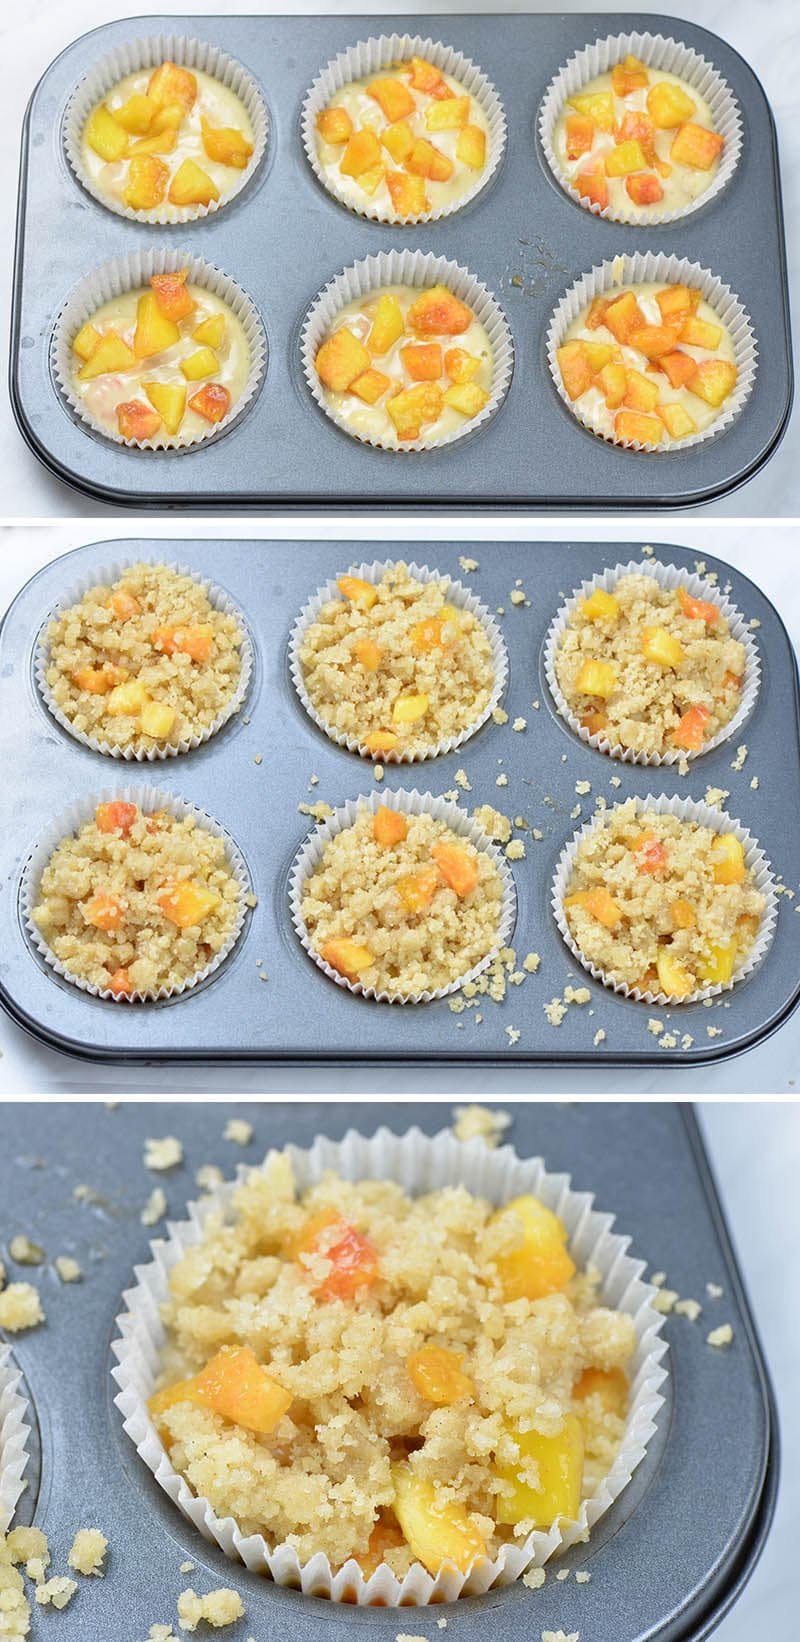 Peach muffins in muffin pan ready for baking.